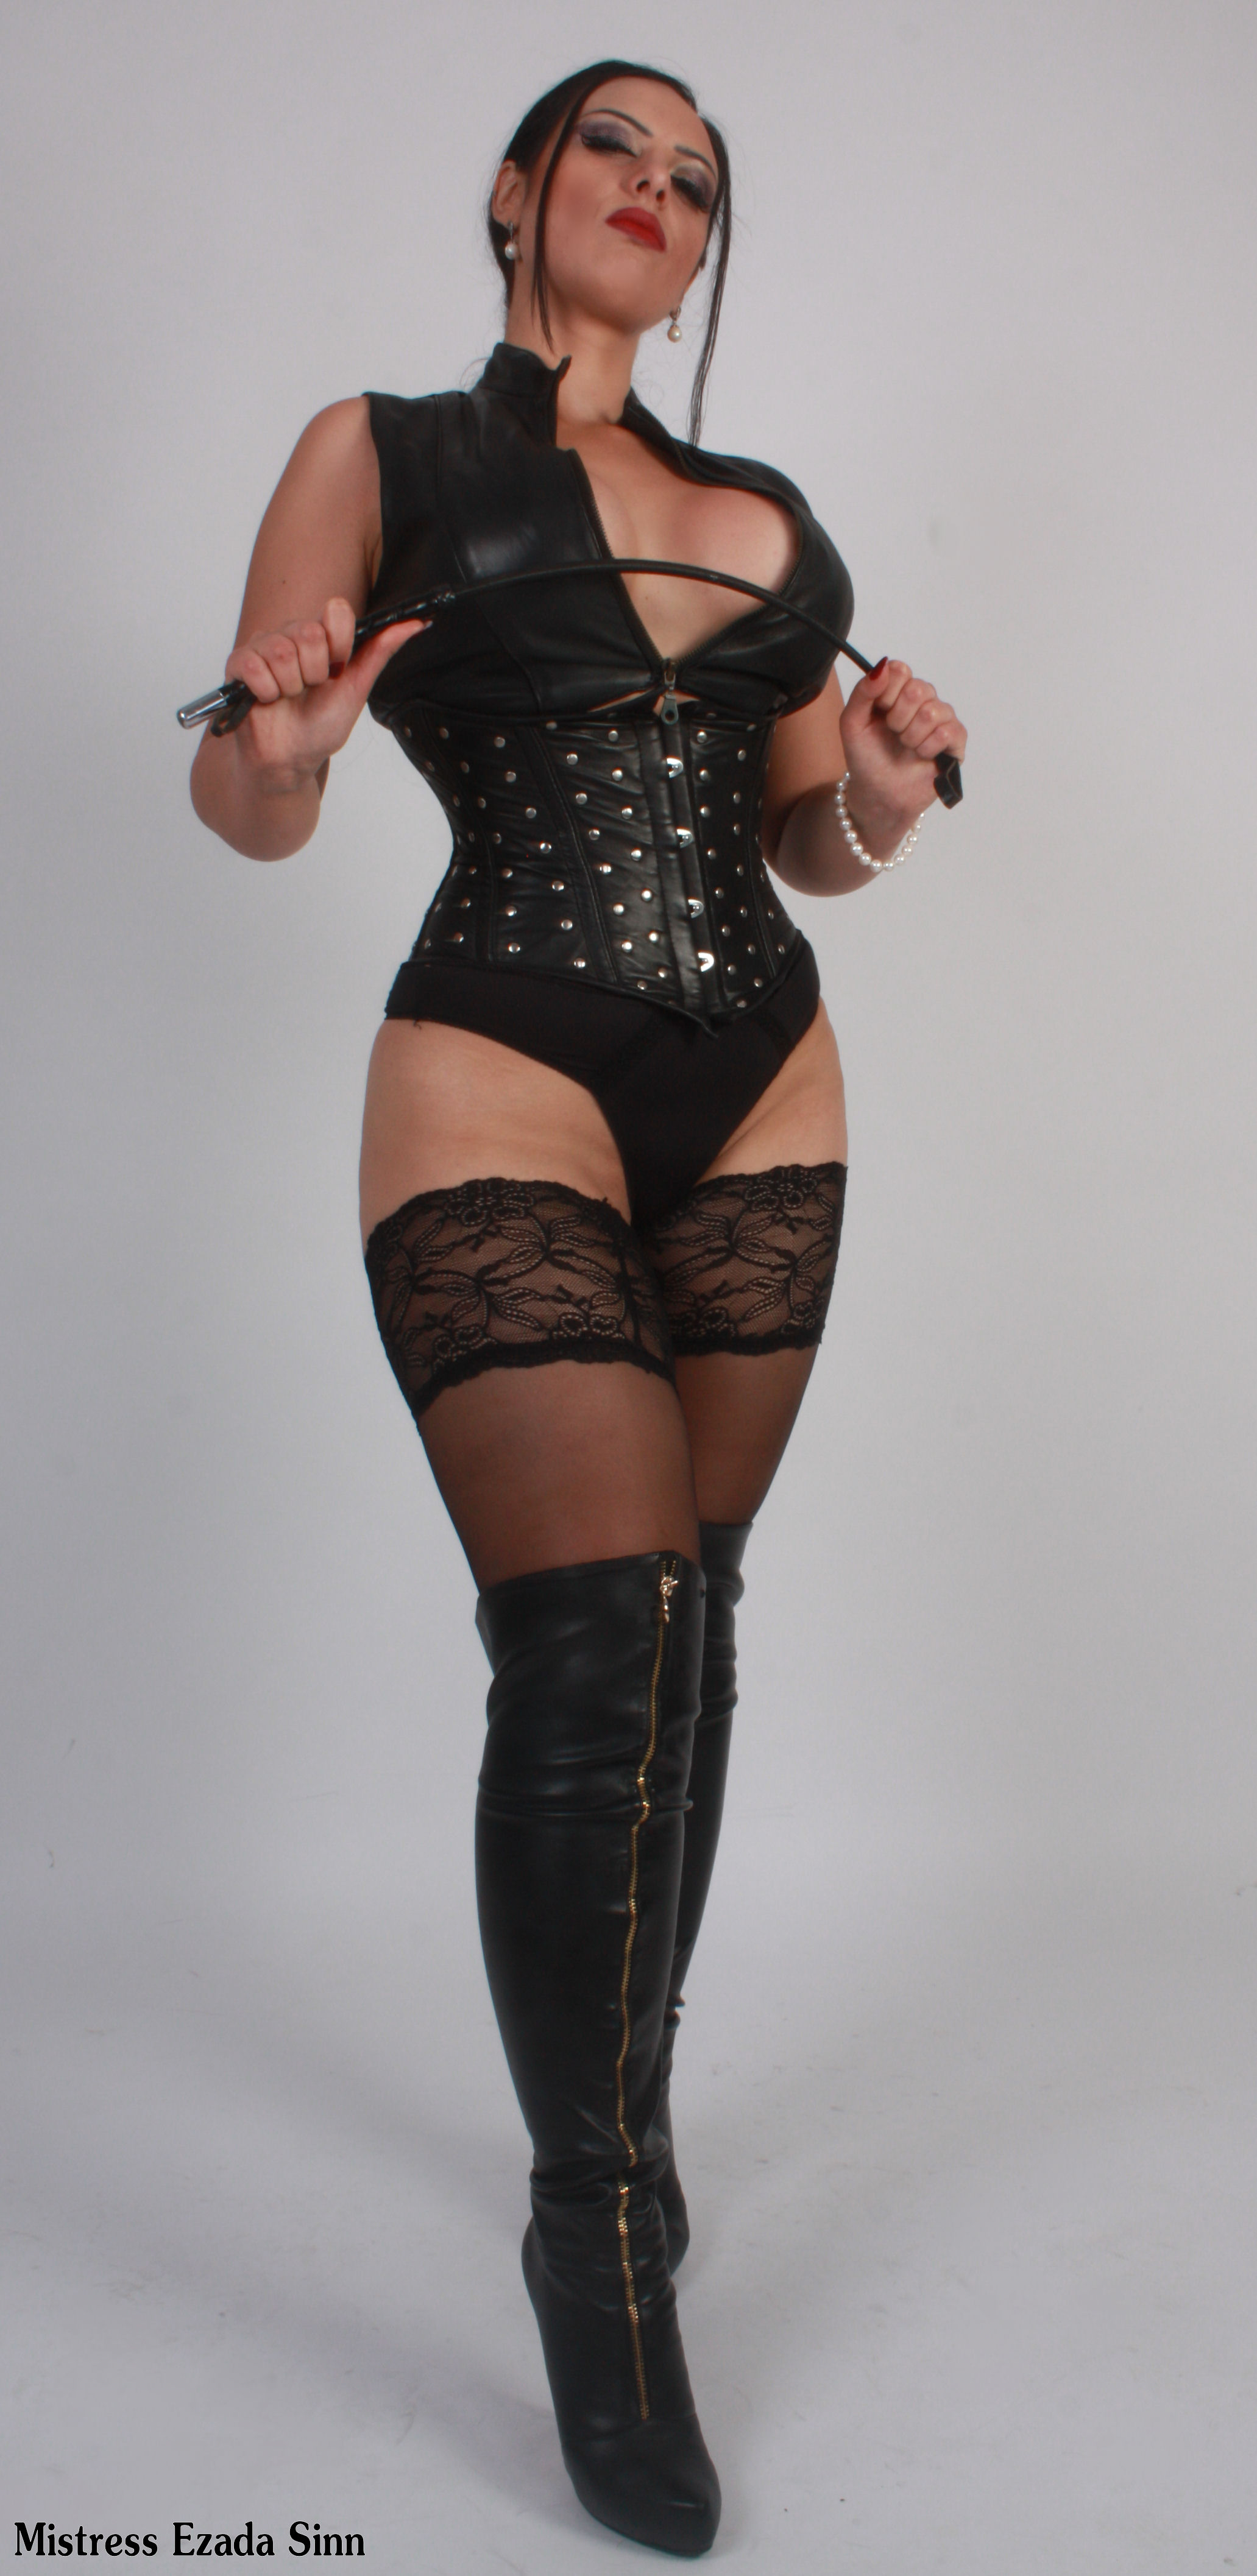 Your goddess in cruel spiked heeled leather boots and basque